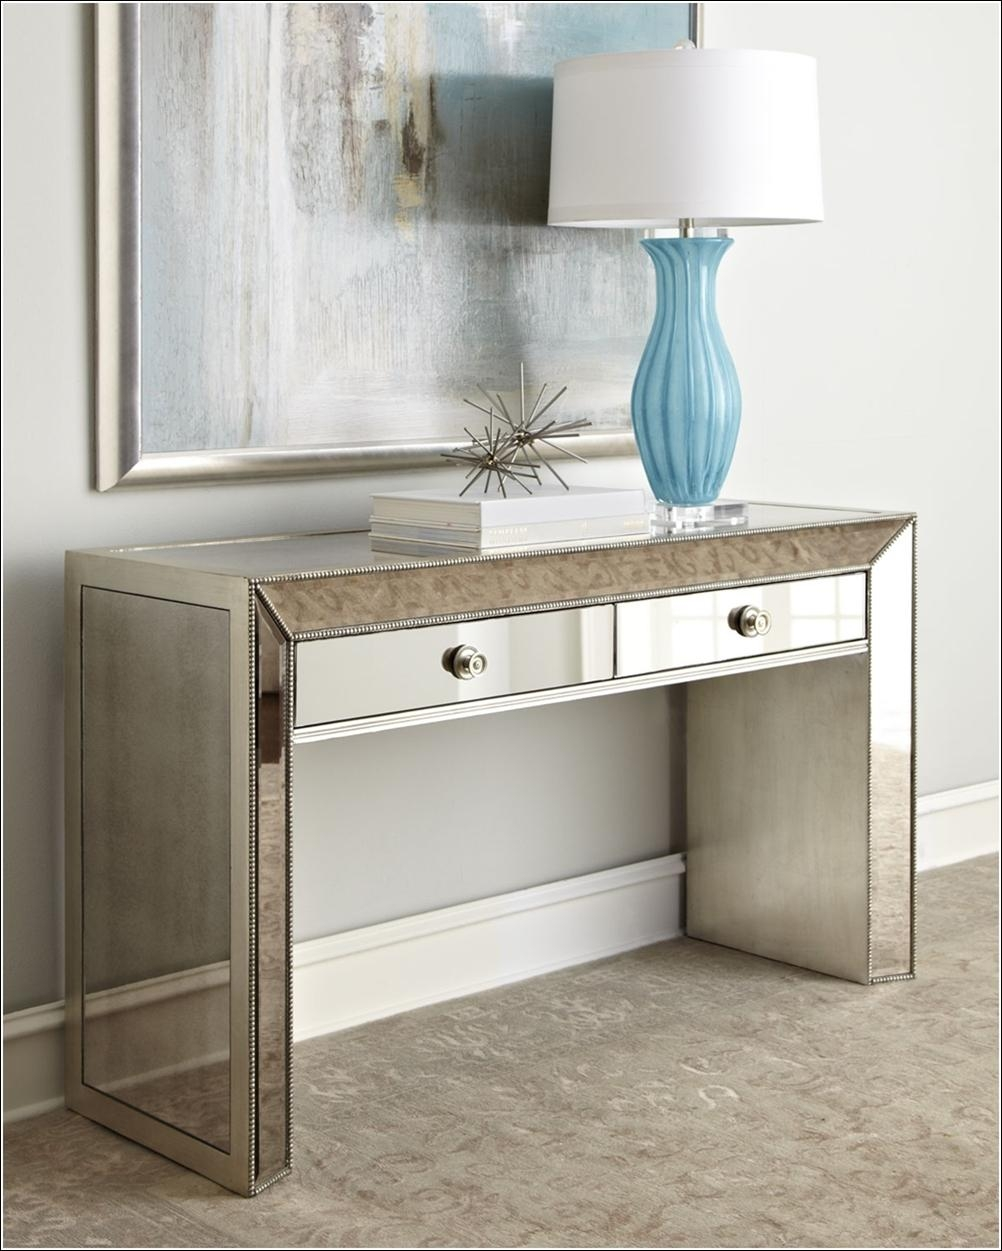 Glamorous Mirrored Furniture For Your Home! Intended For Mirrored Furniture (Image 11 of 20)